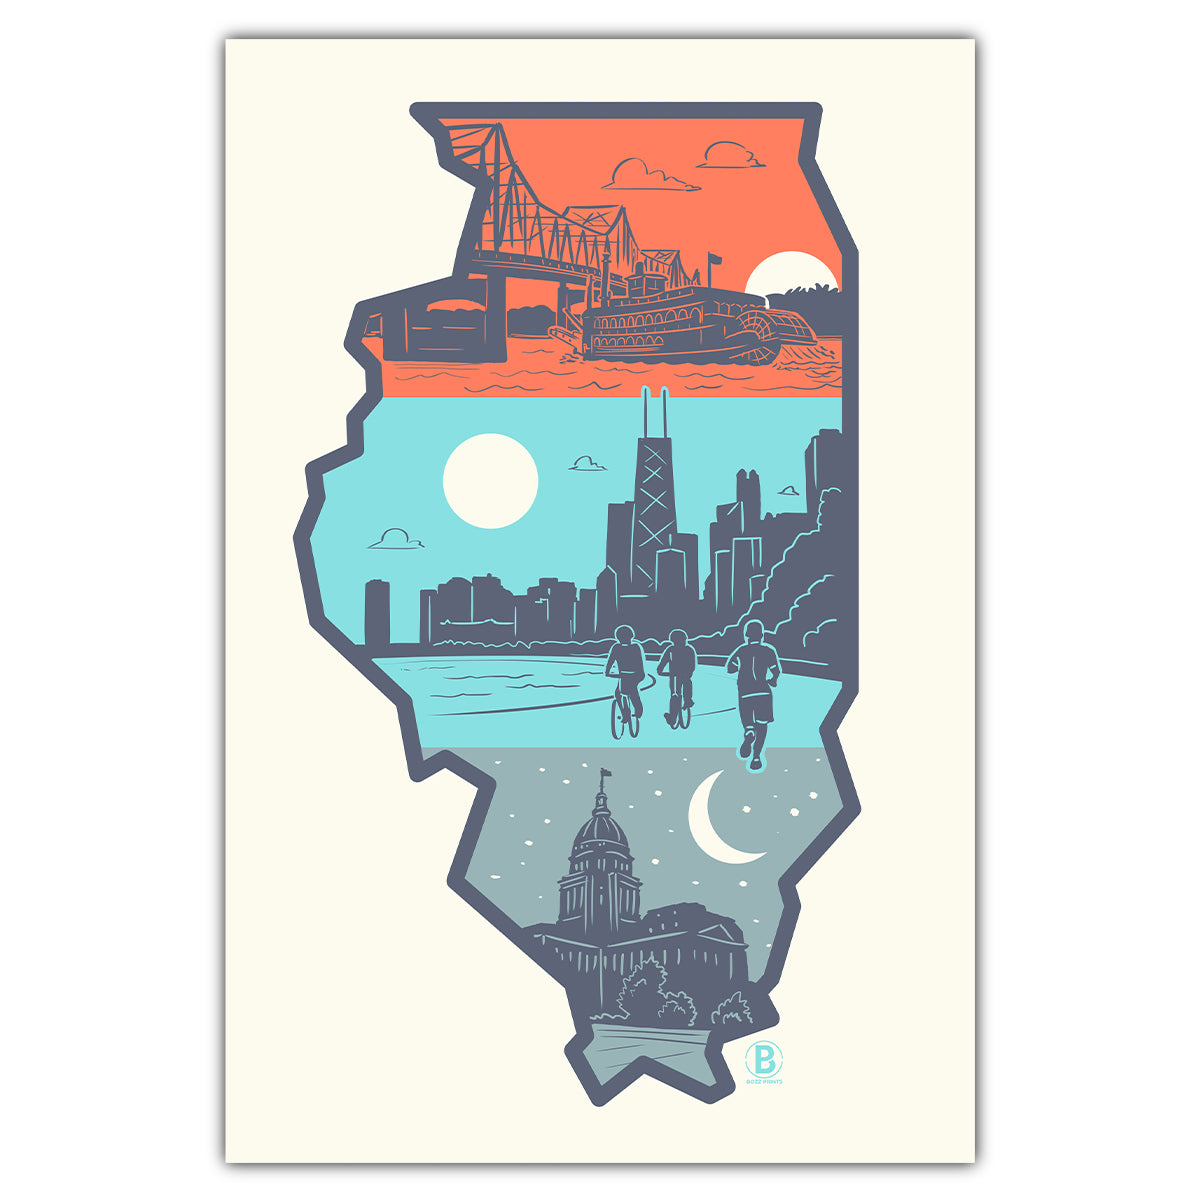 Layers of Illinois Postcard